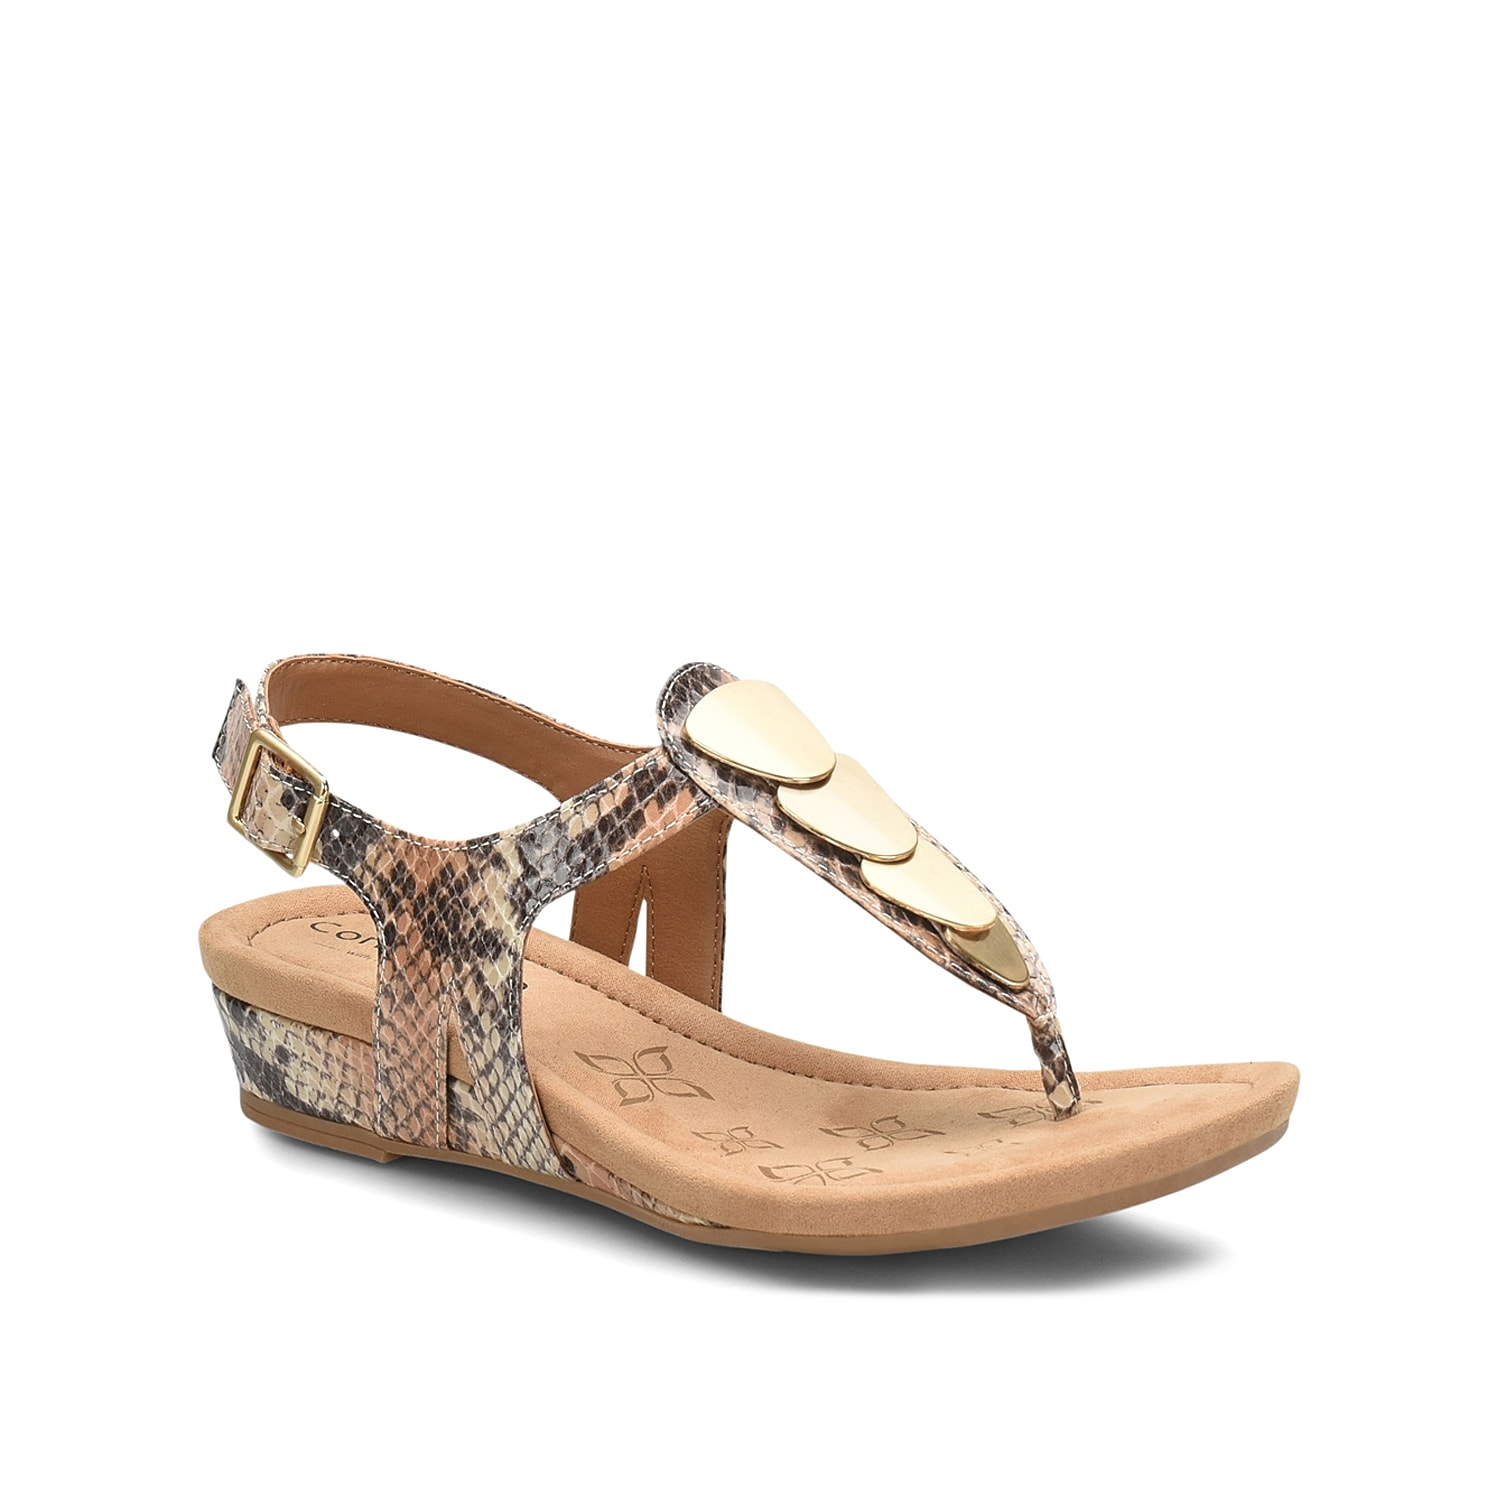 Comfortiva promises lasting style with the Summit sandal. These slingbacks feature a chic embossed design and wedge heel for an extra hint of height.